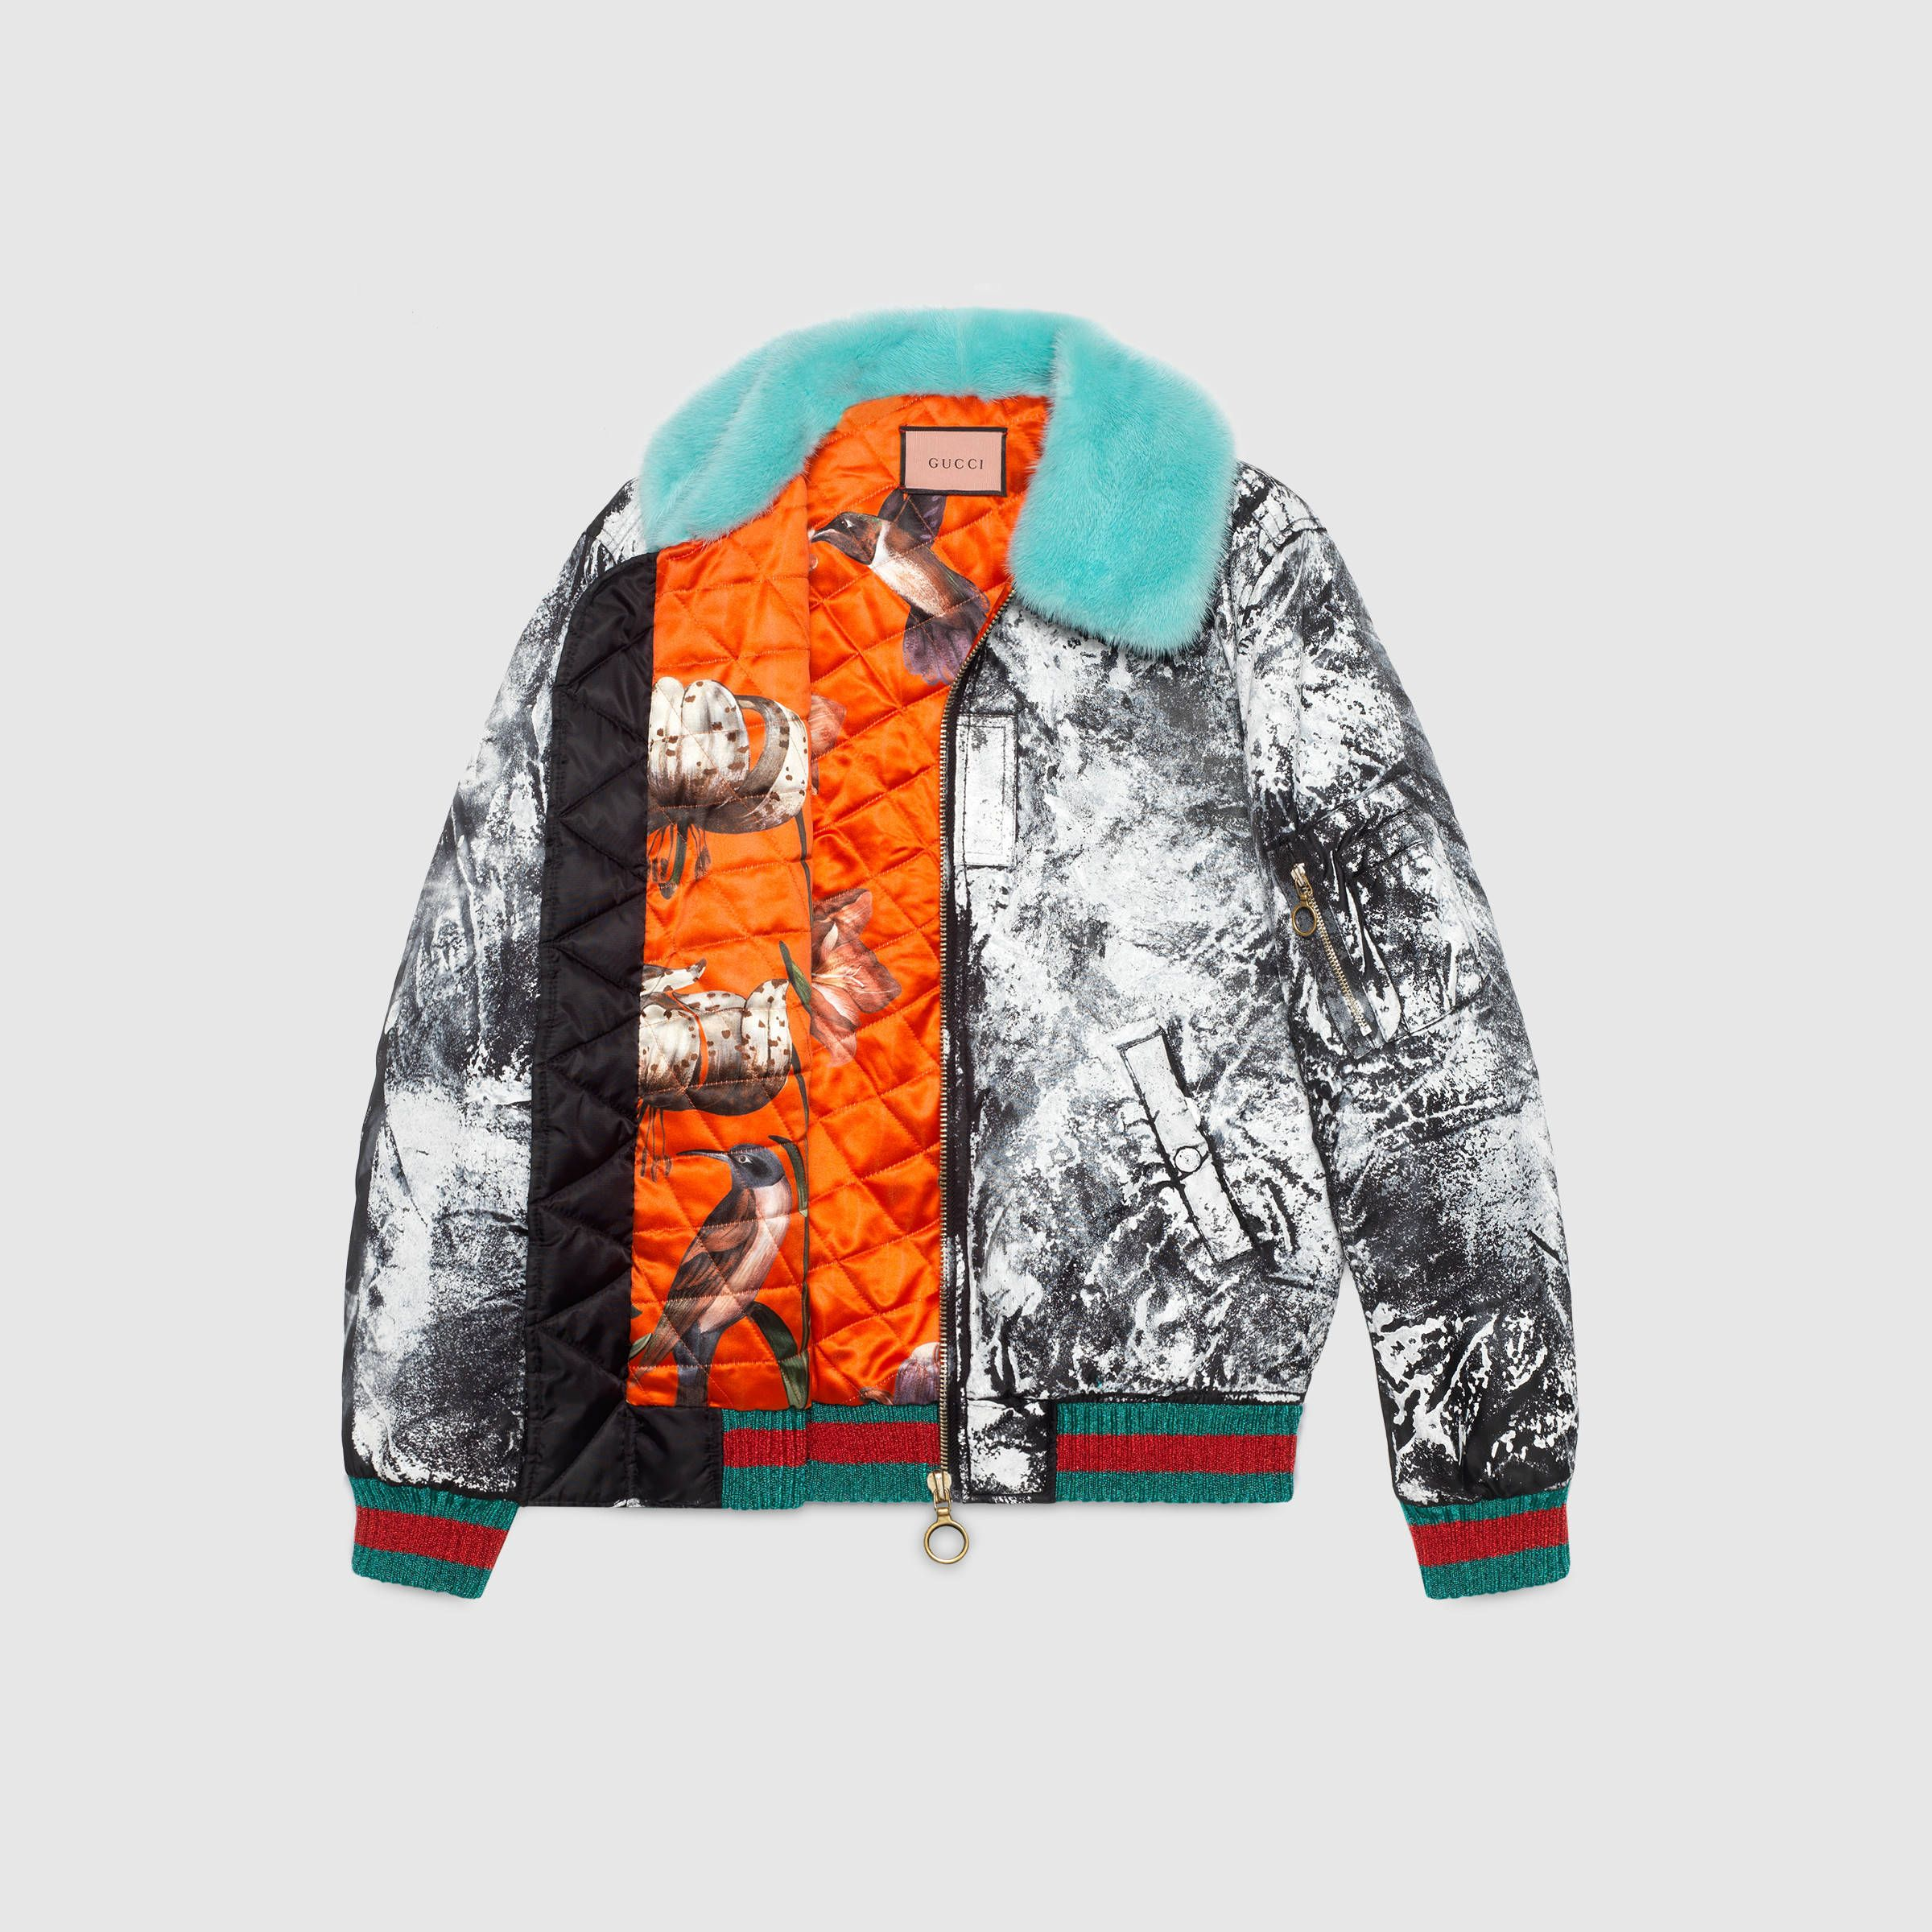 Handpainted Bomber Jacket From The Guccighost Collection Patterned Bomber Jacket Bomber Jacket Leather Bomber Jacket [ 2400 x 2400 Pixel ]